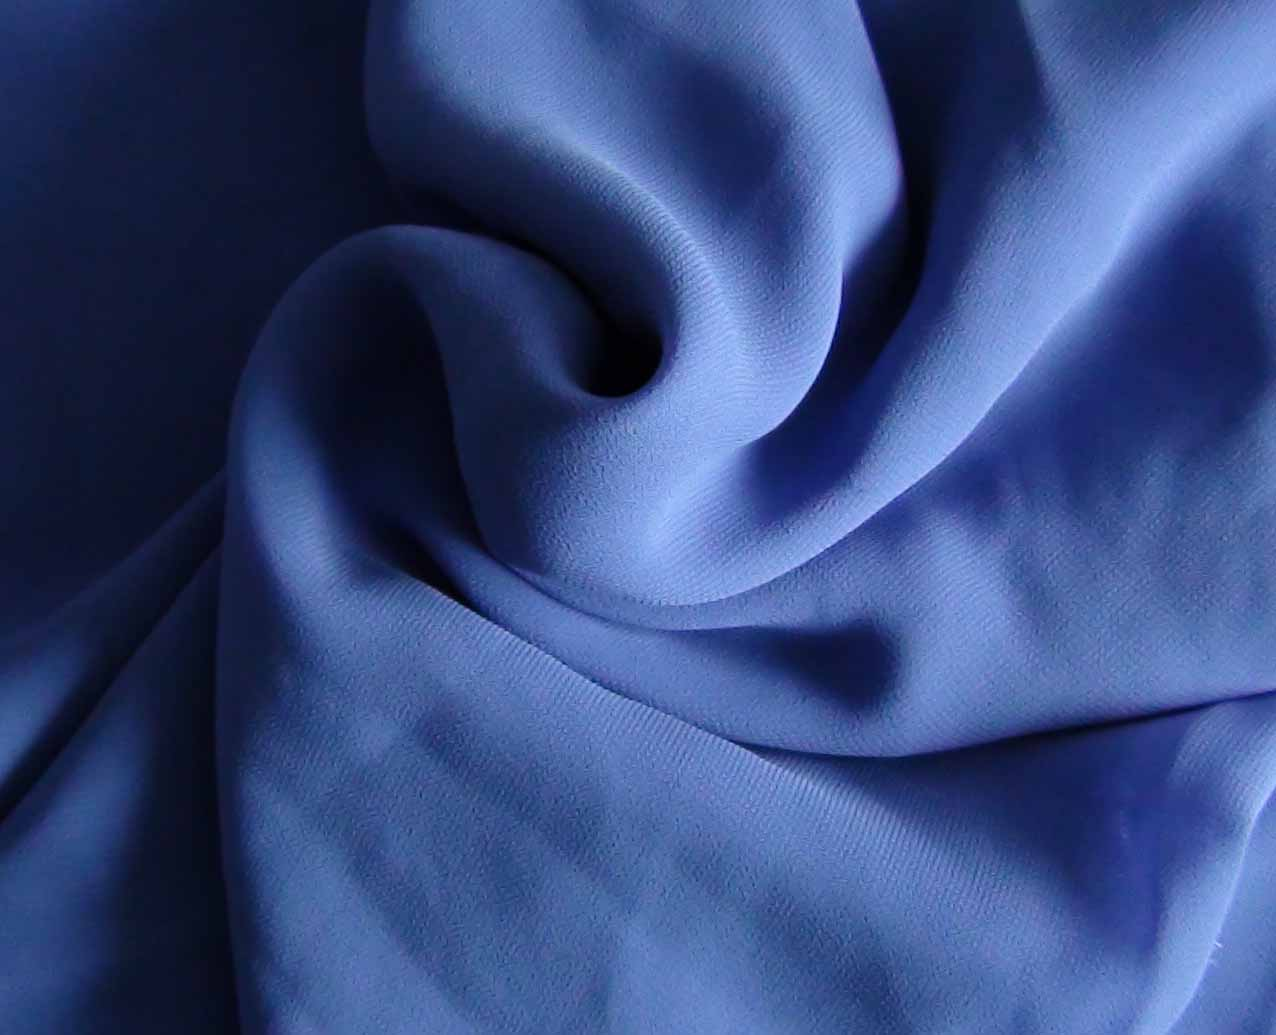 Chiffon: All About Chiffon Fabric - 75.2KB